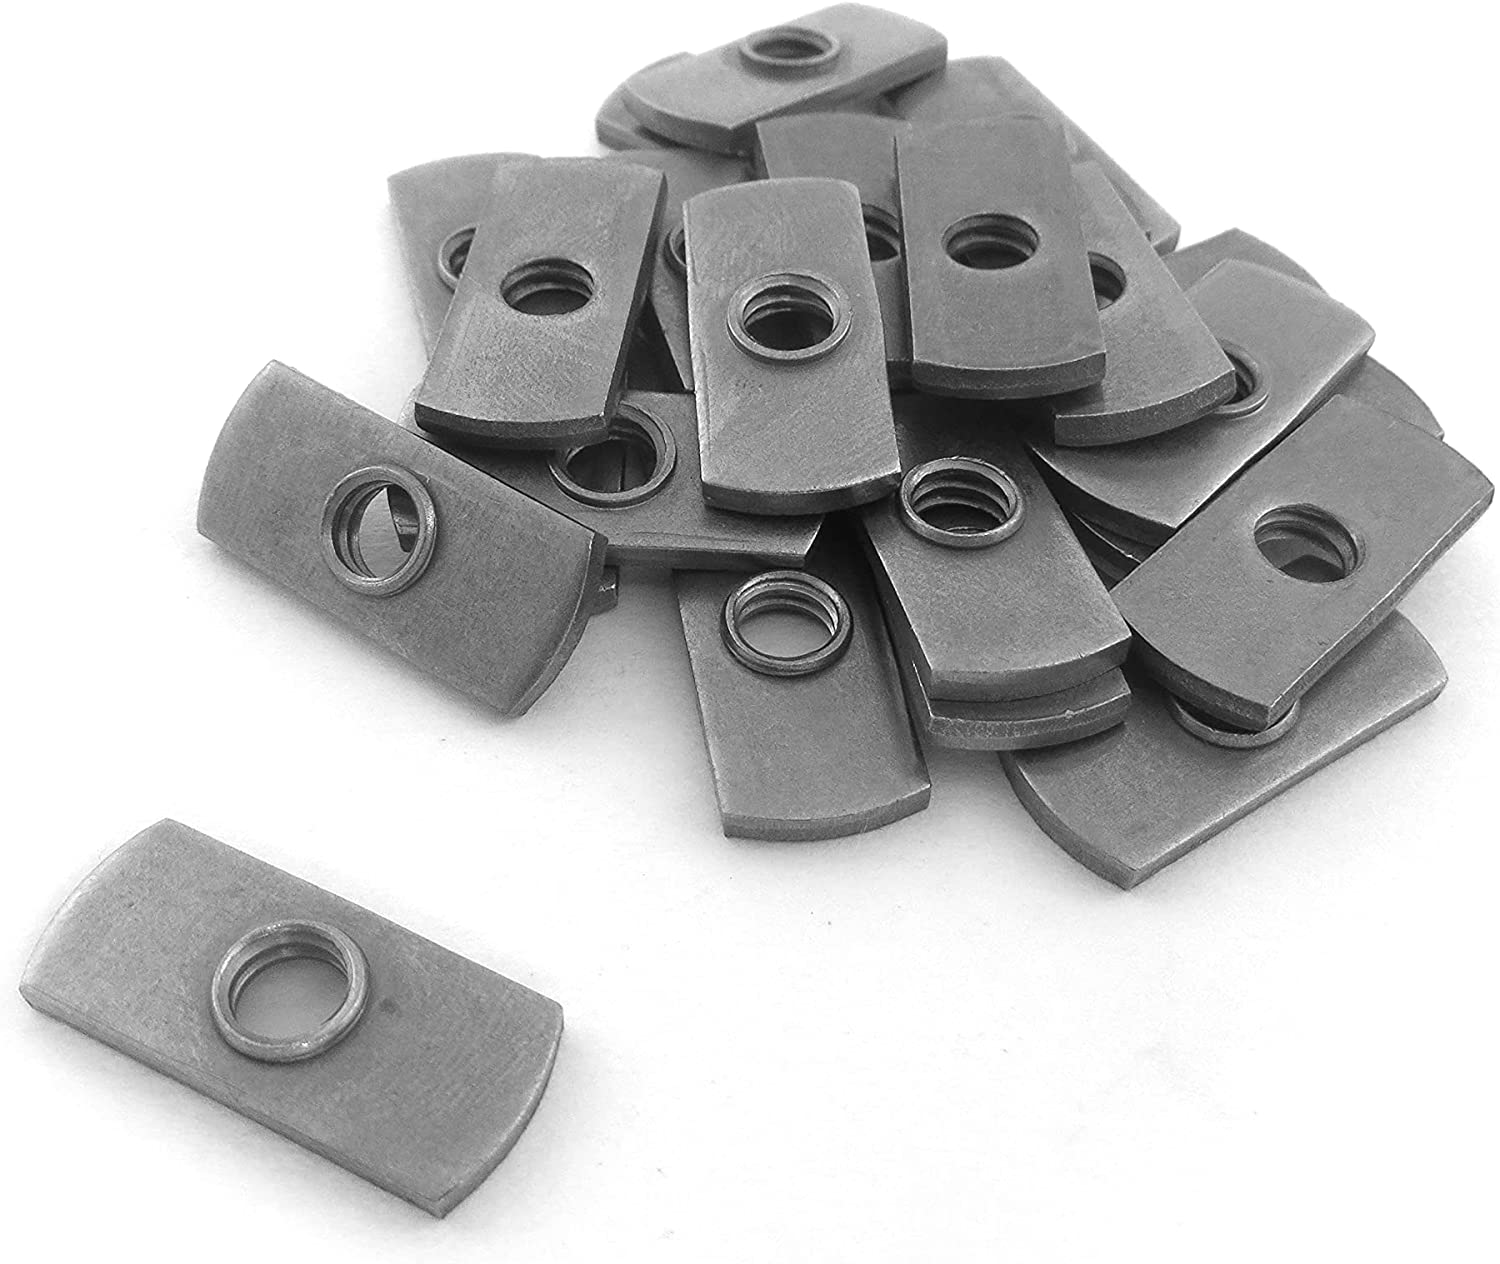 Taytools TTW05928 1 Max 57% OFF 4-20 Centered Nippon regular agency Hole Trac T-Nuts T Sliding for